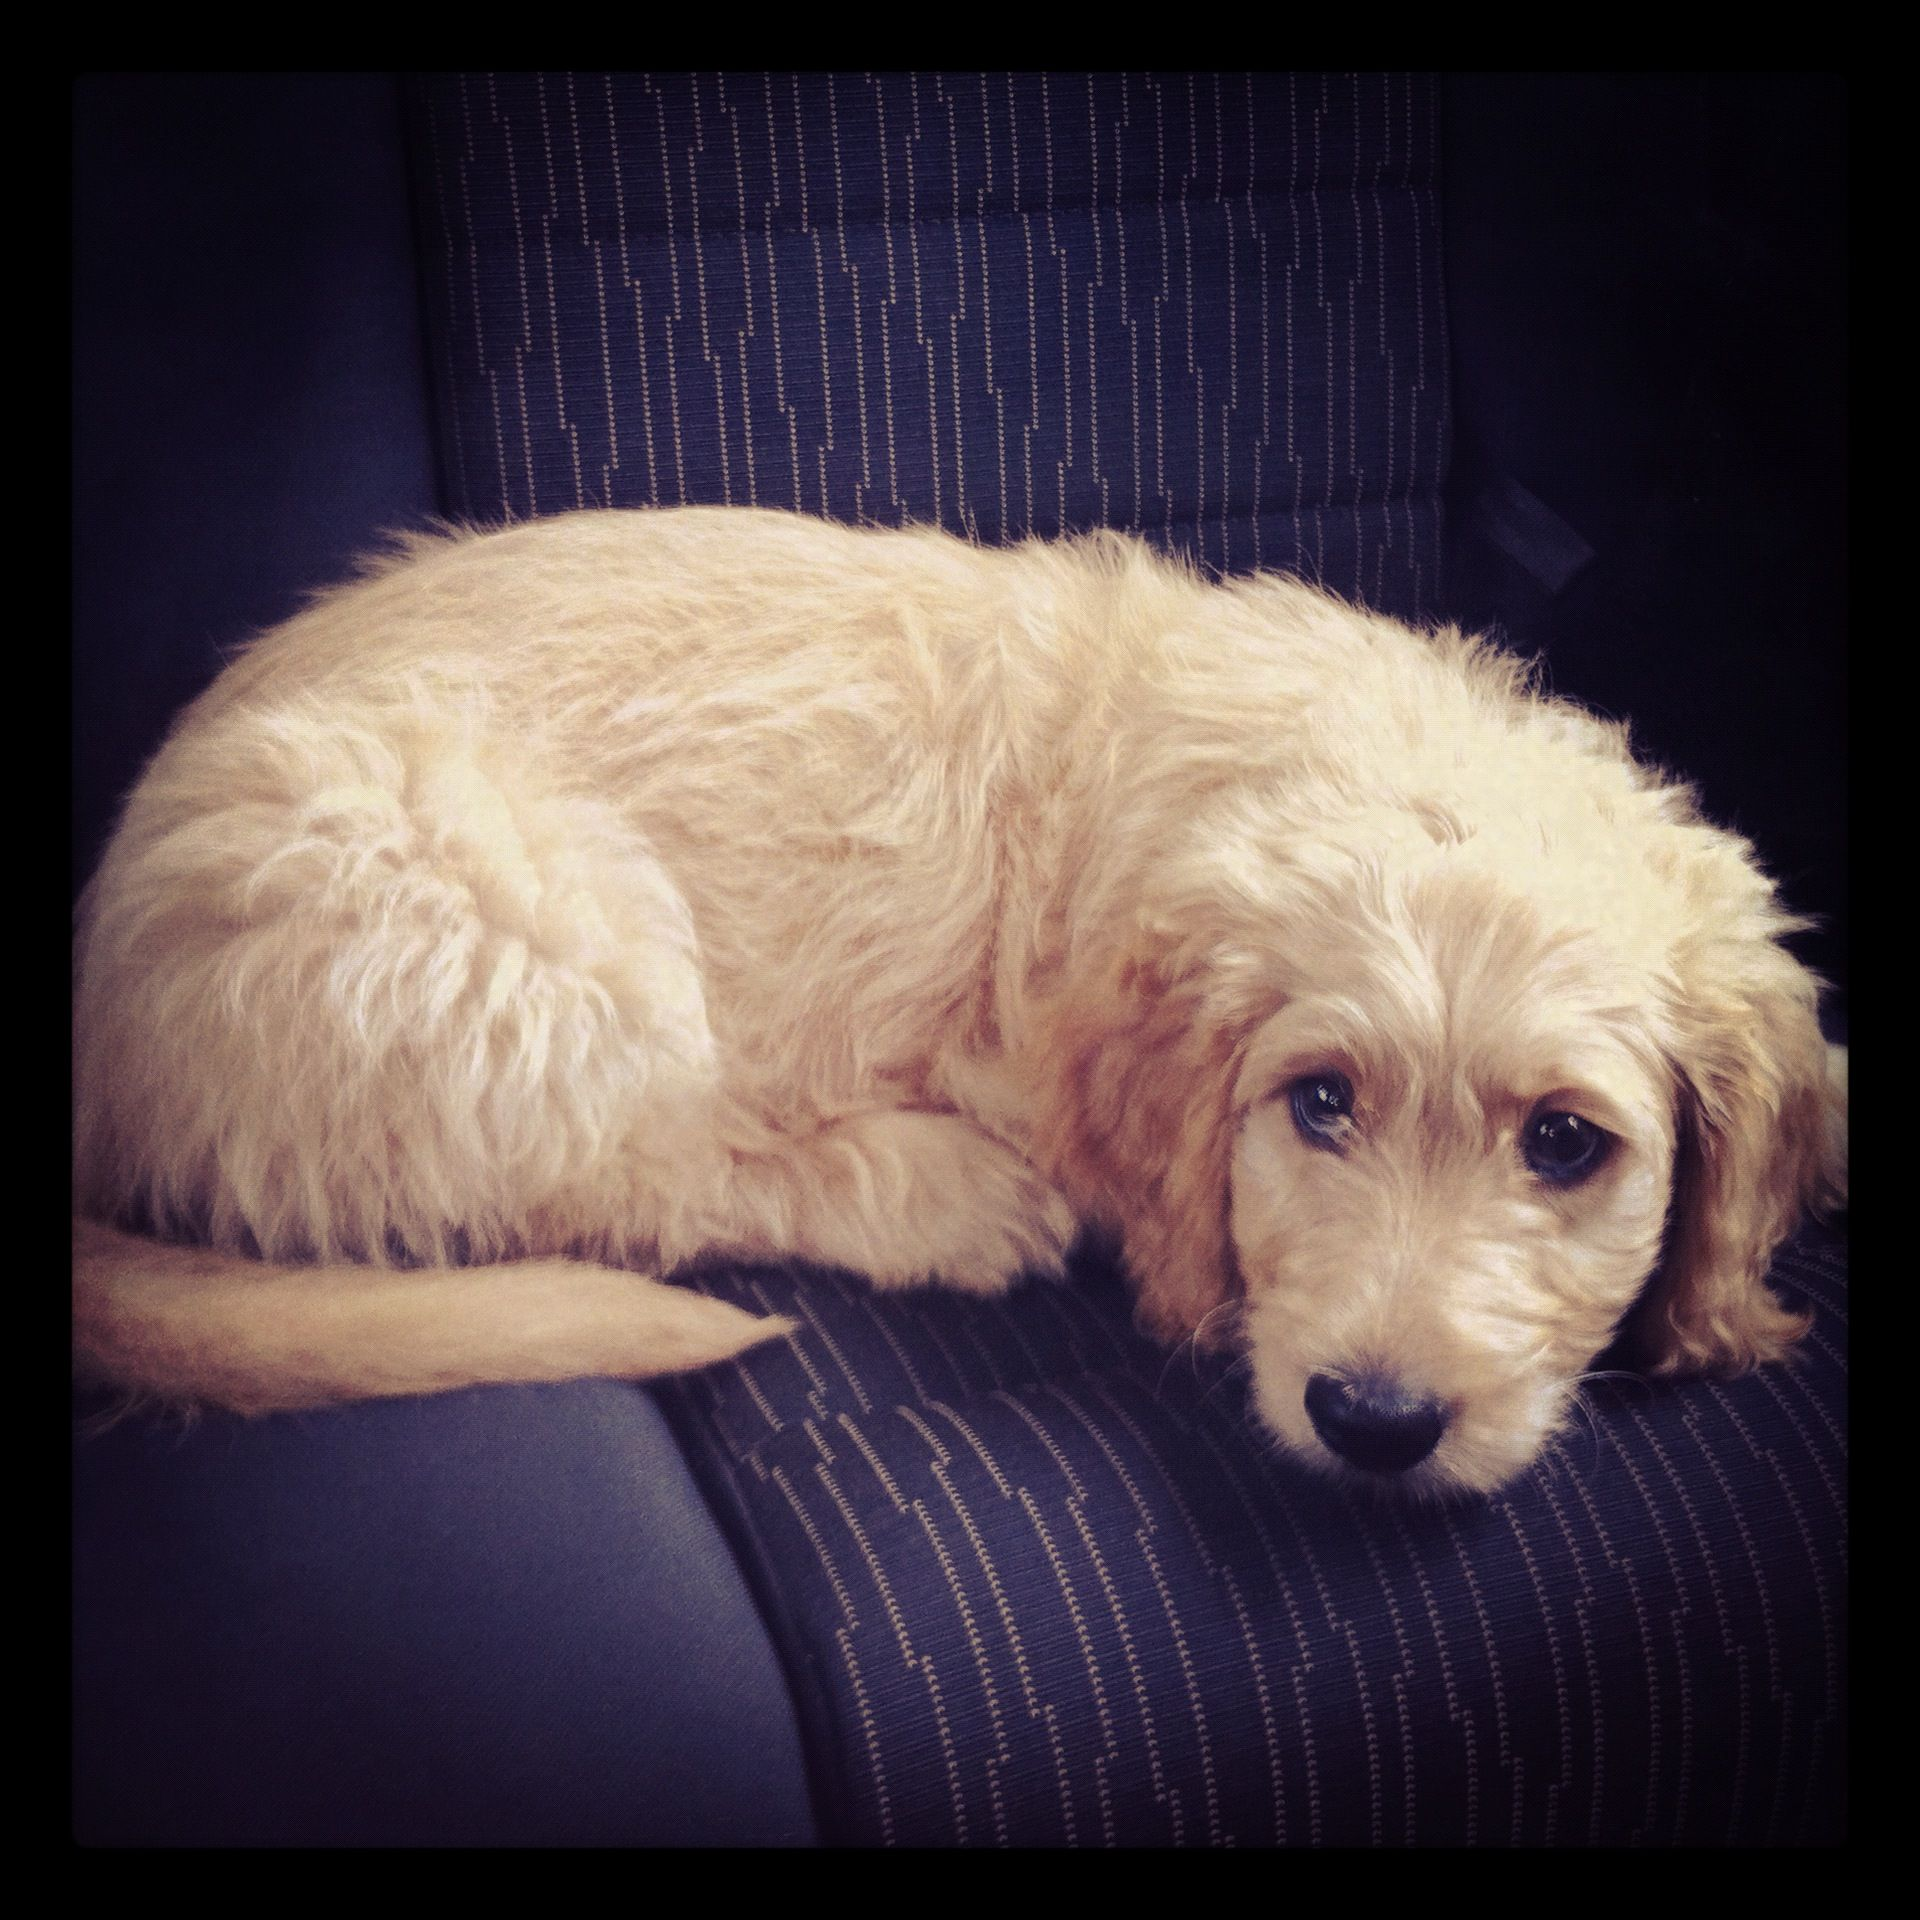 Goldendoodle Puppy Dogs, puppies, Goldendoodle, Cute animals